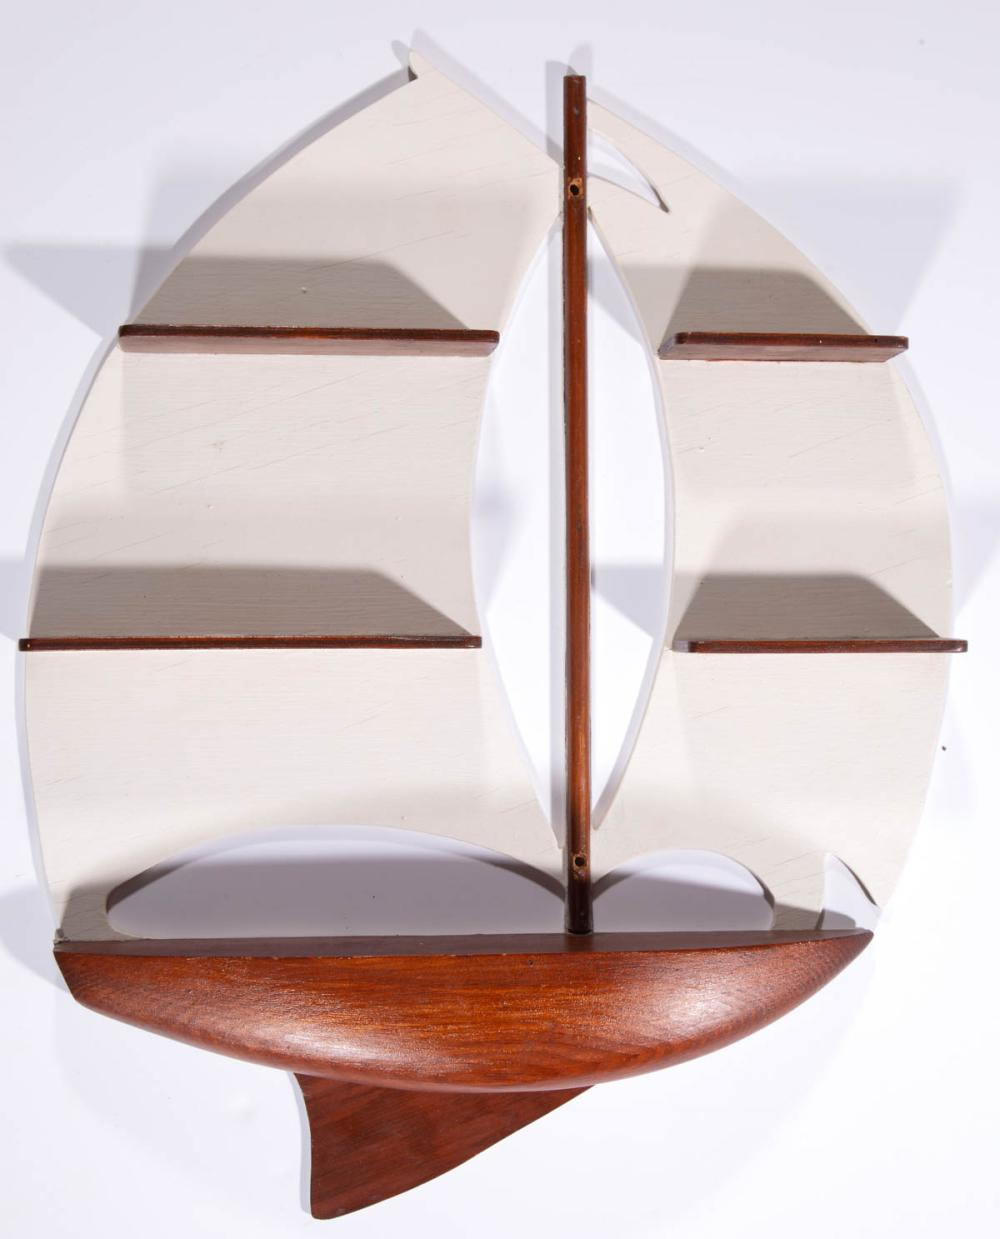 AMERICAN FOLK ART CARVED AND PAINTED SAILBOAT SHELF